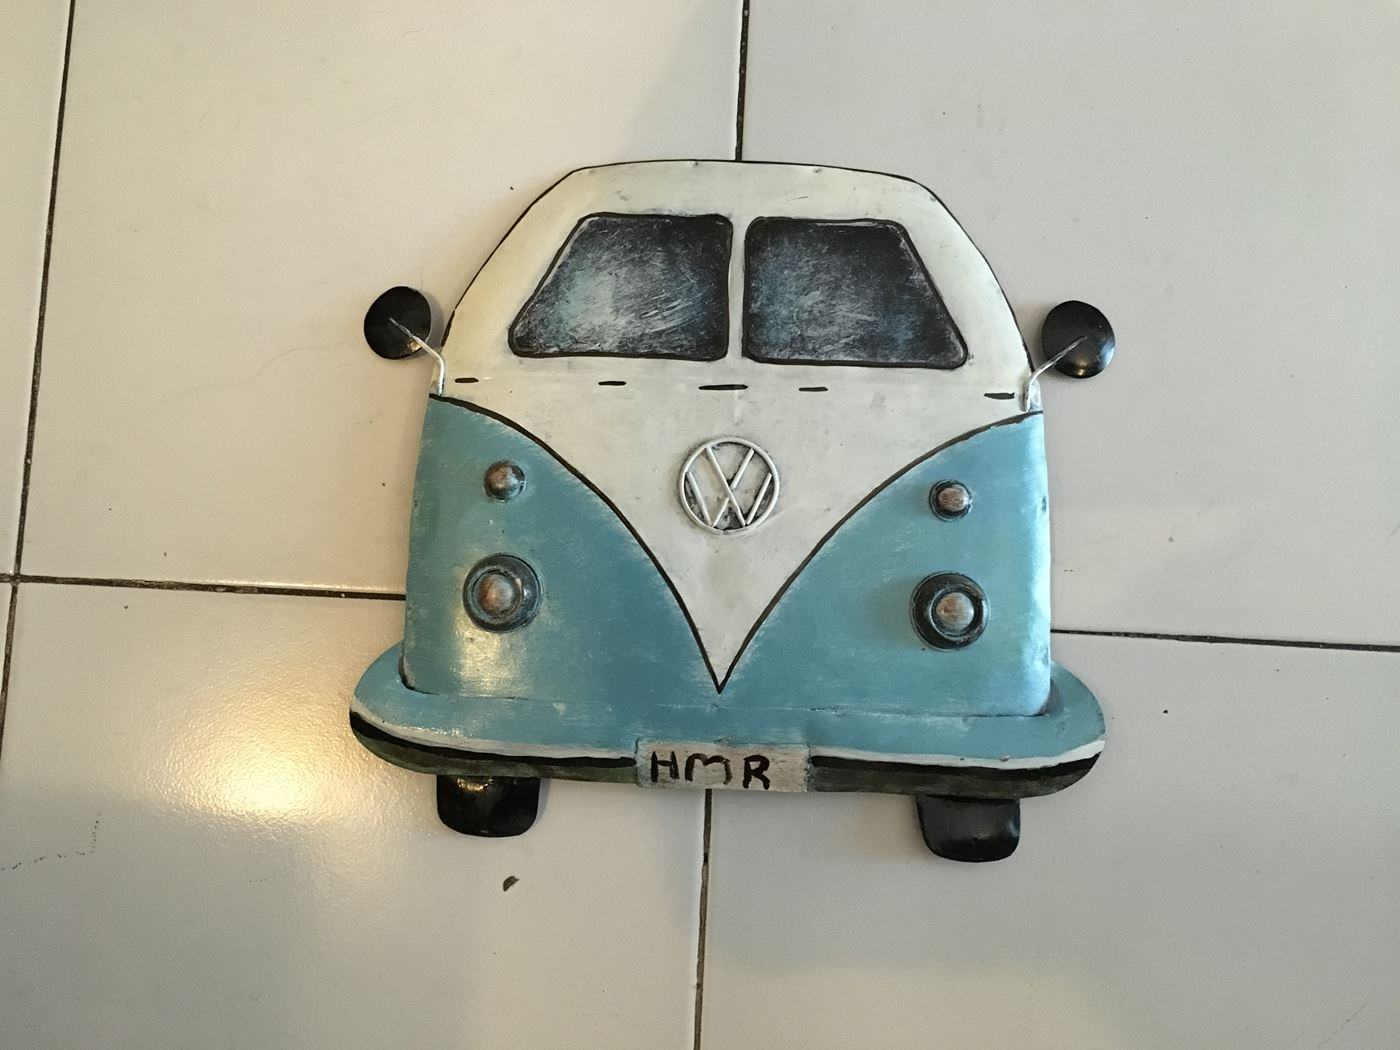 metalen deco 'vw'